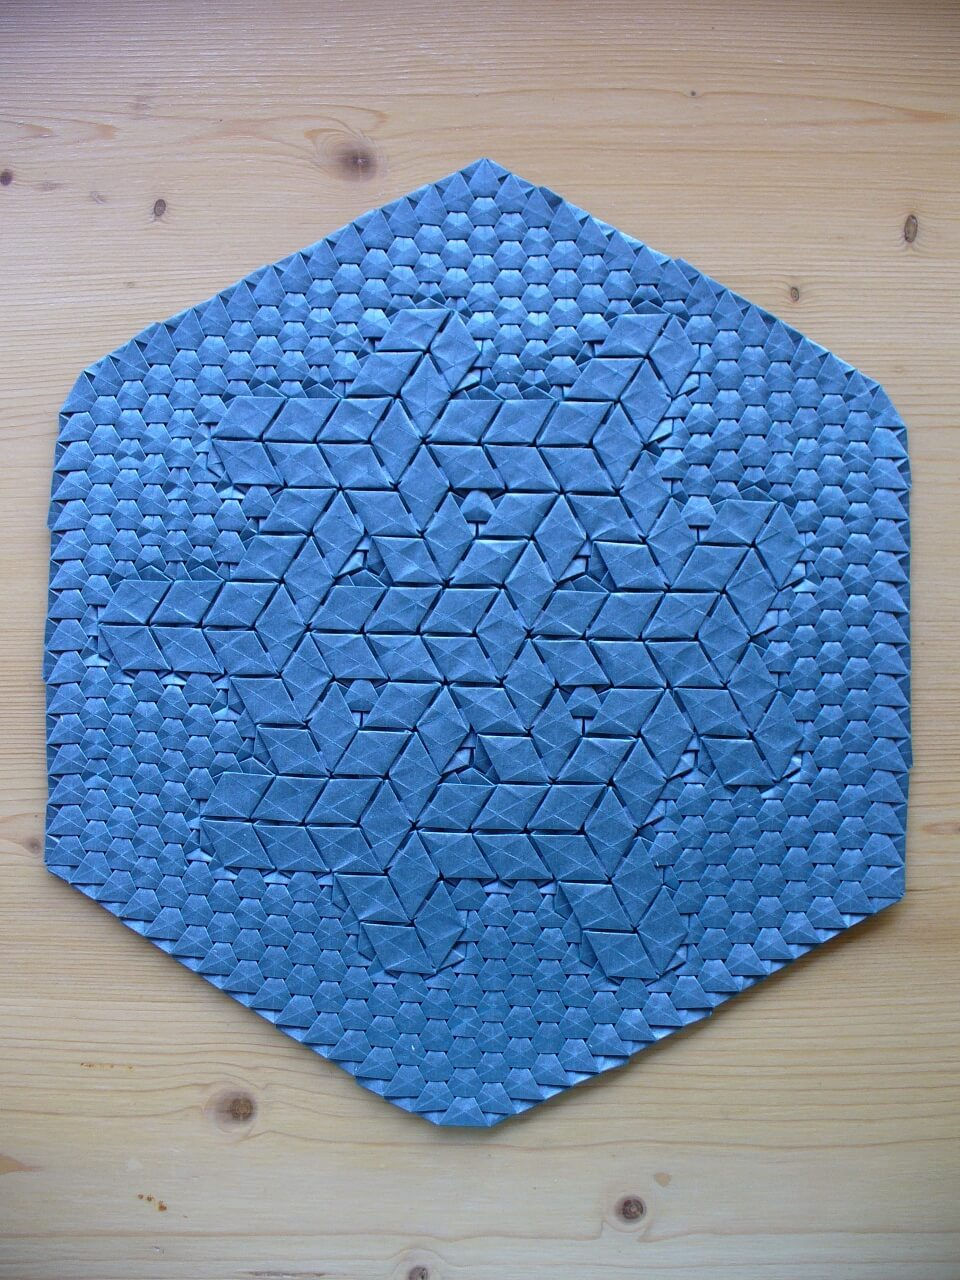 Origami Space One Tessellation